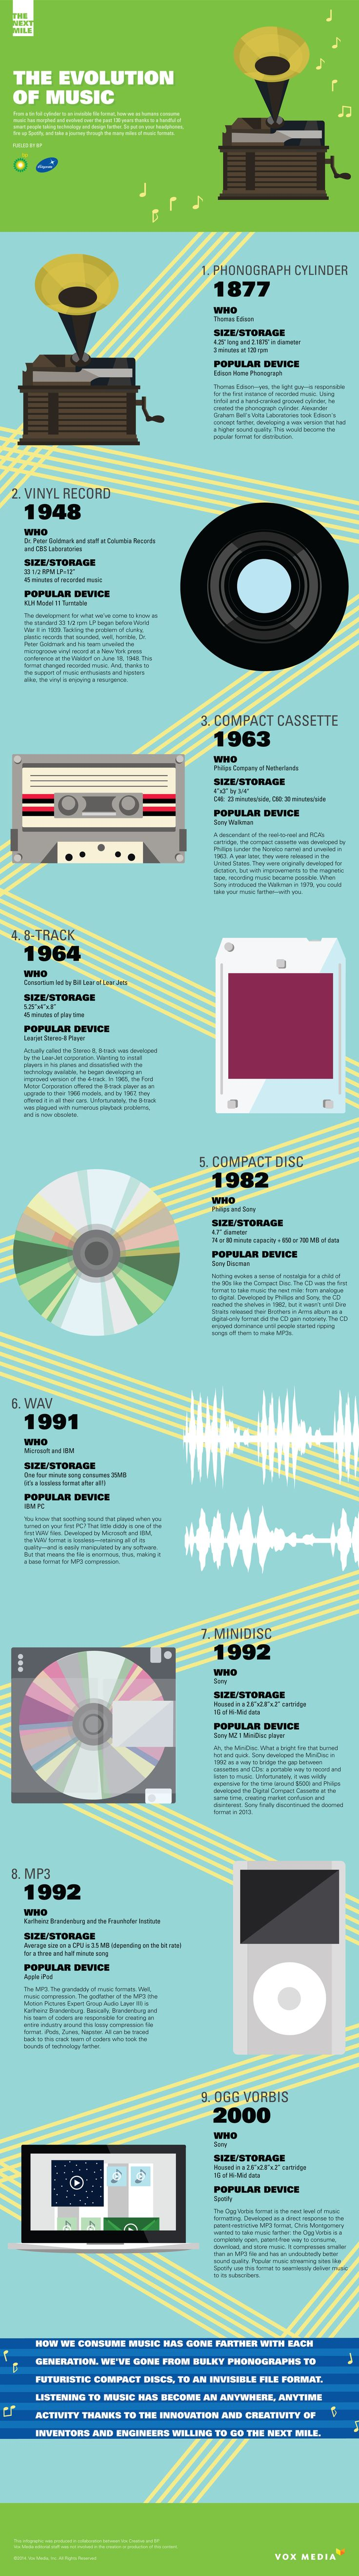 Recorded music through the years...